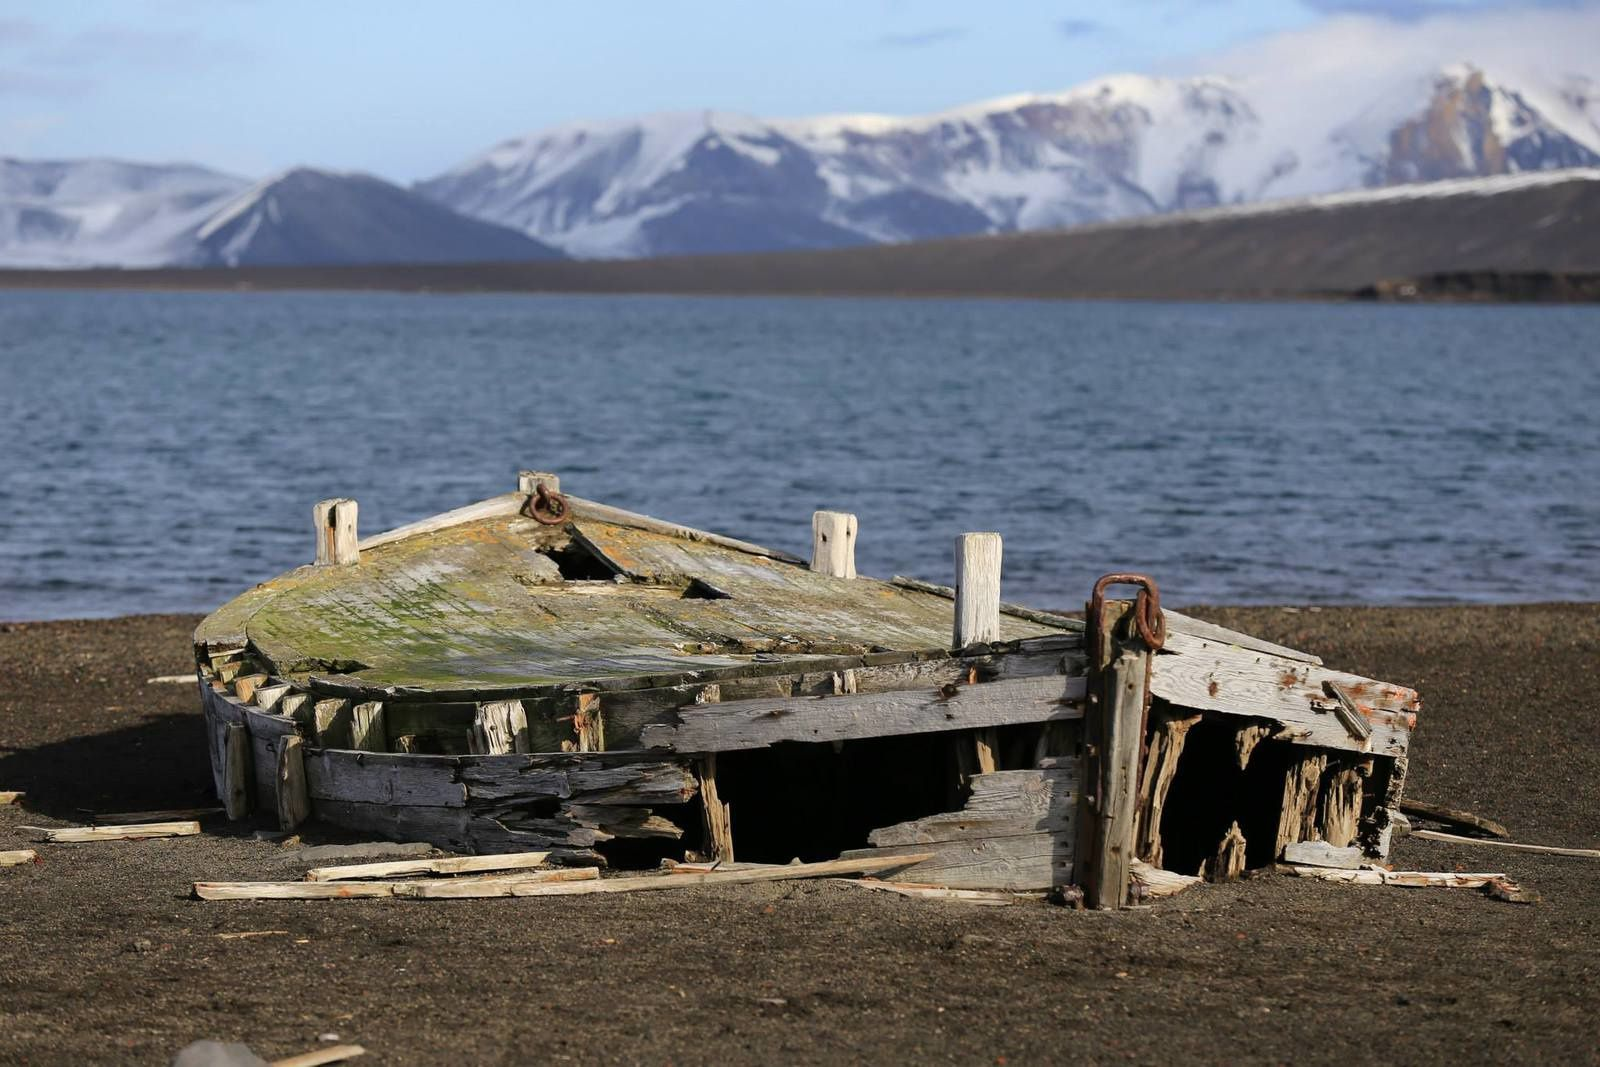 Deception island - some whaling boats still exist - photo Antony Van Eeten 03.2014